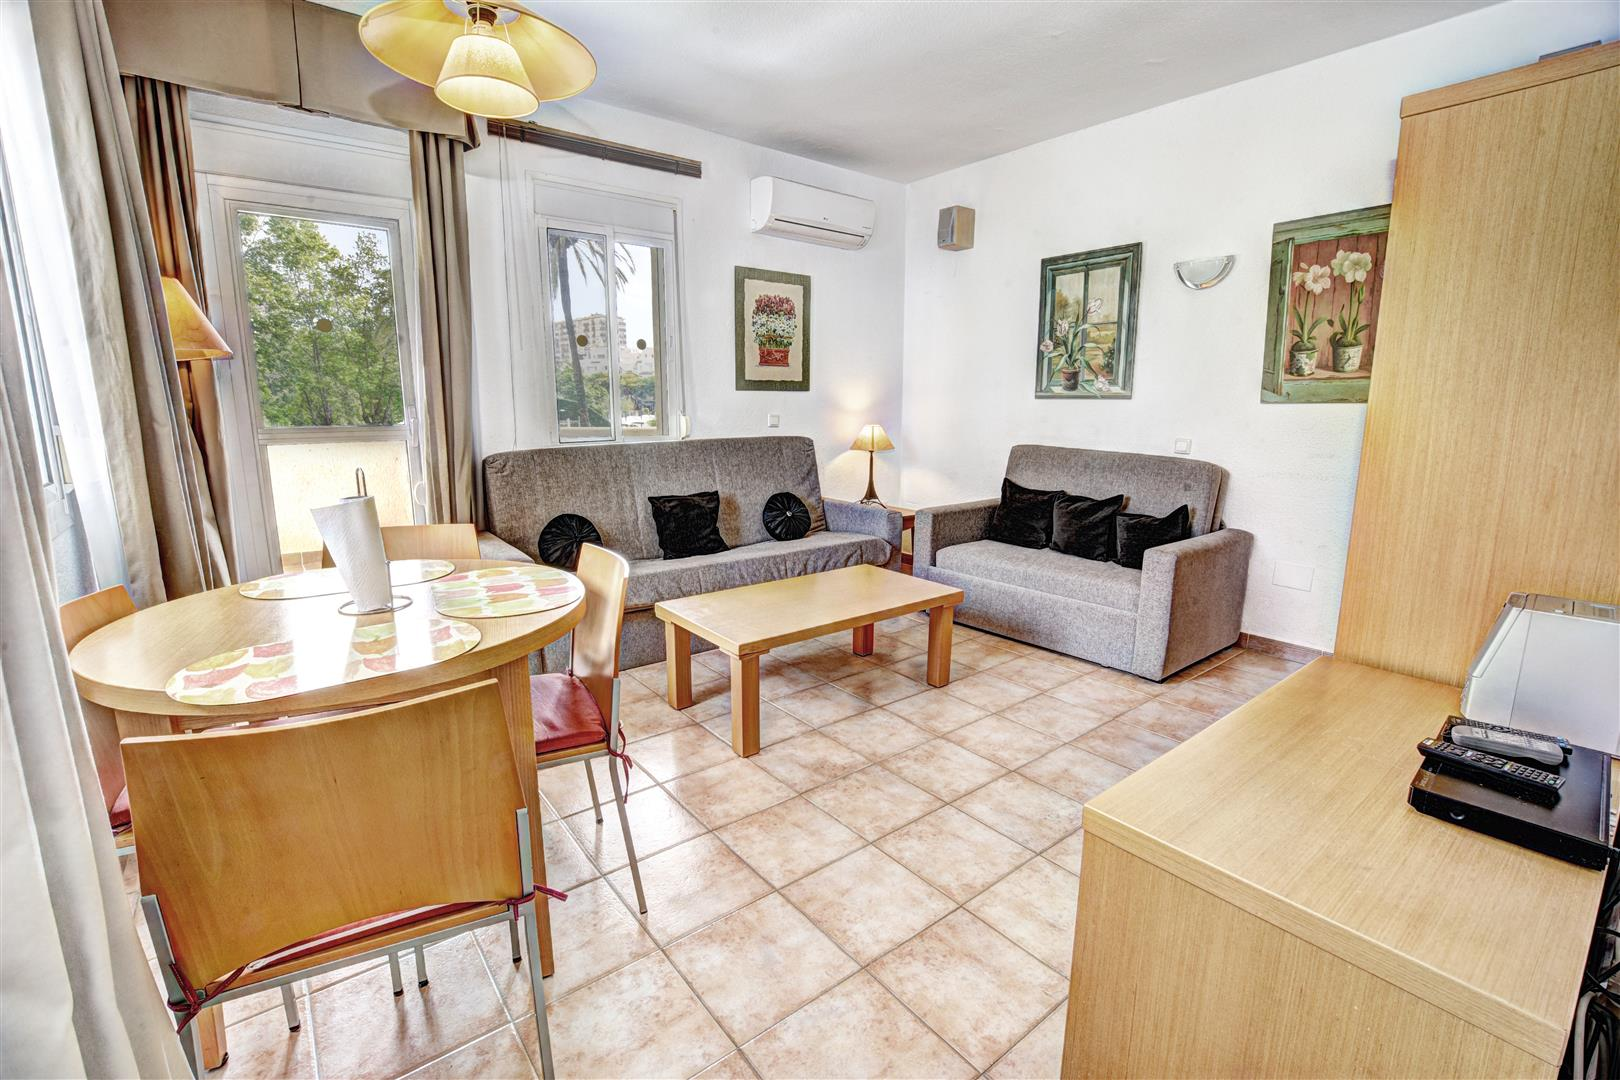 1 bed apartment for sale in Benalmadena Costa lounge